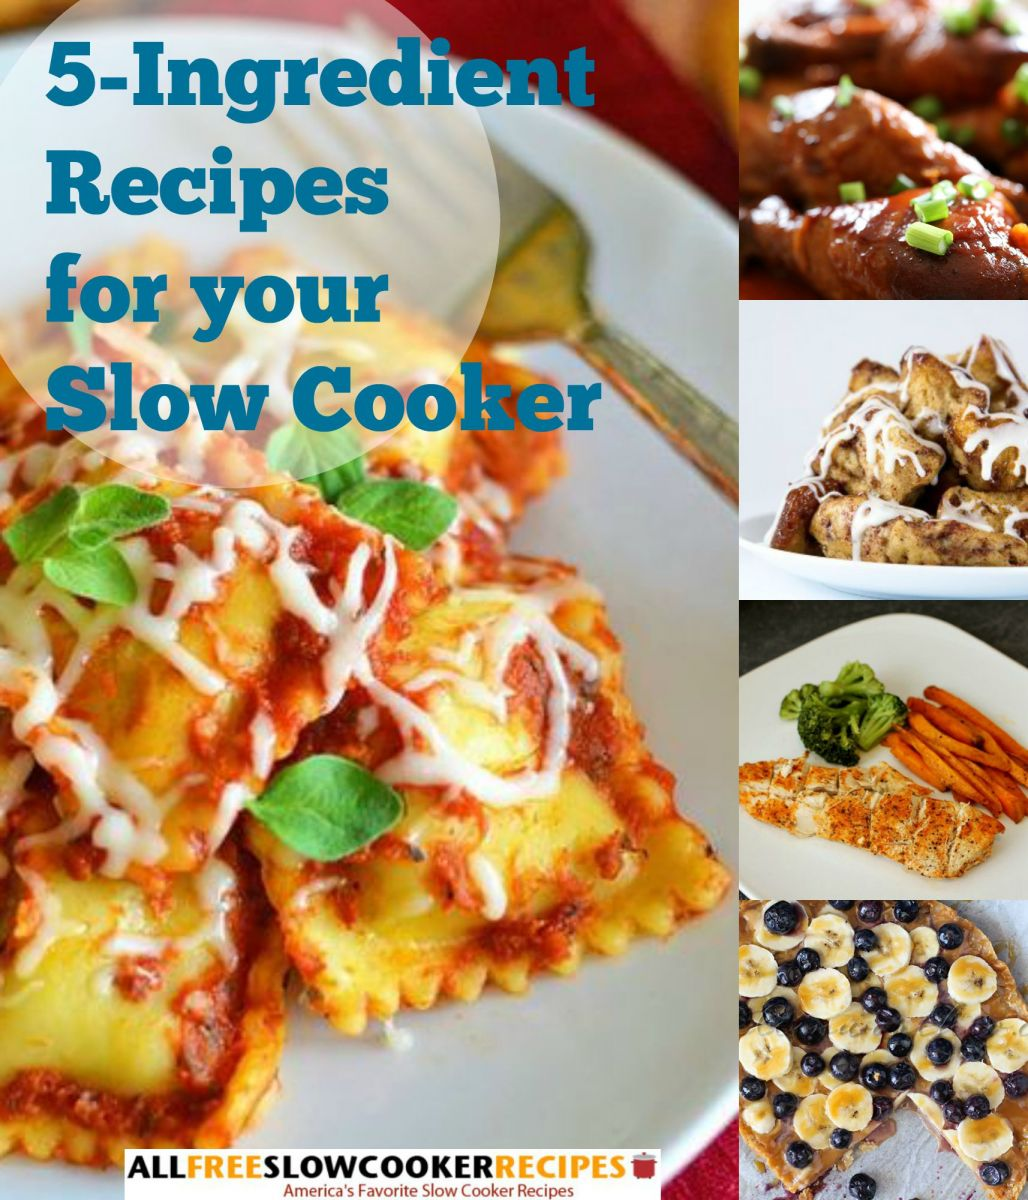 5 ingredient recipes best slow cooker recipes with 5 ingredients or 5 ingredient recipes best slow cooker recipes with 5 ingredients or less forumfinder Image collections